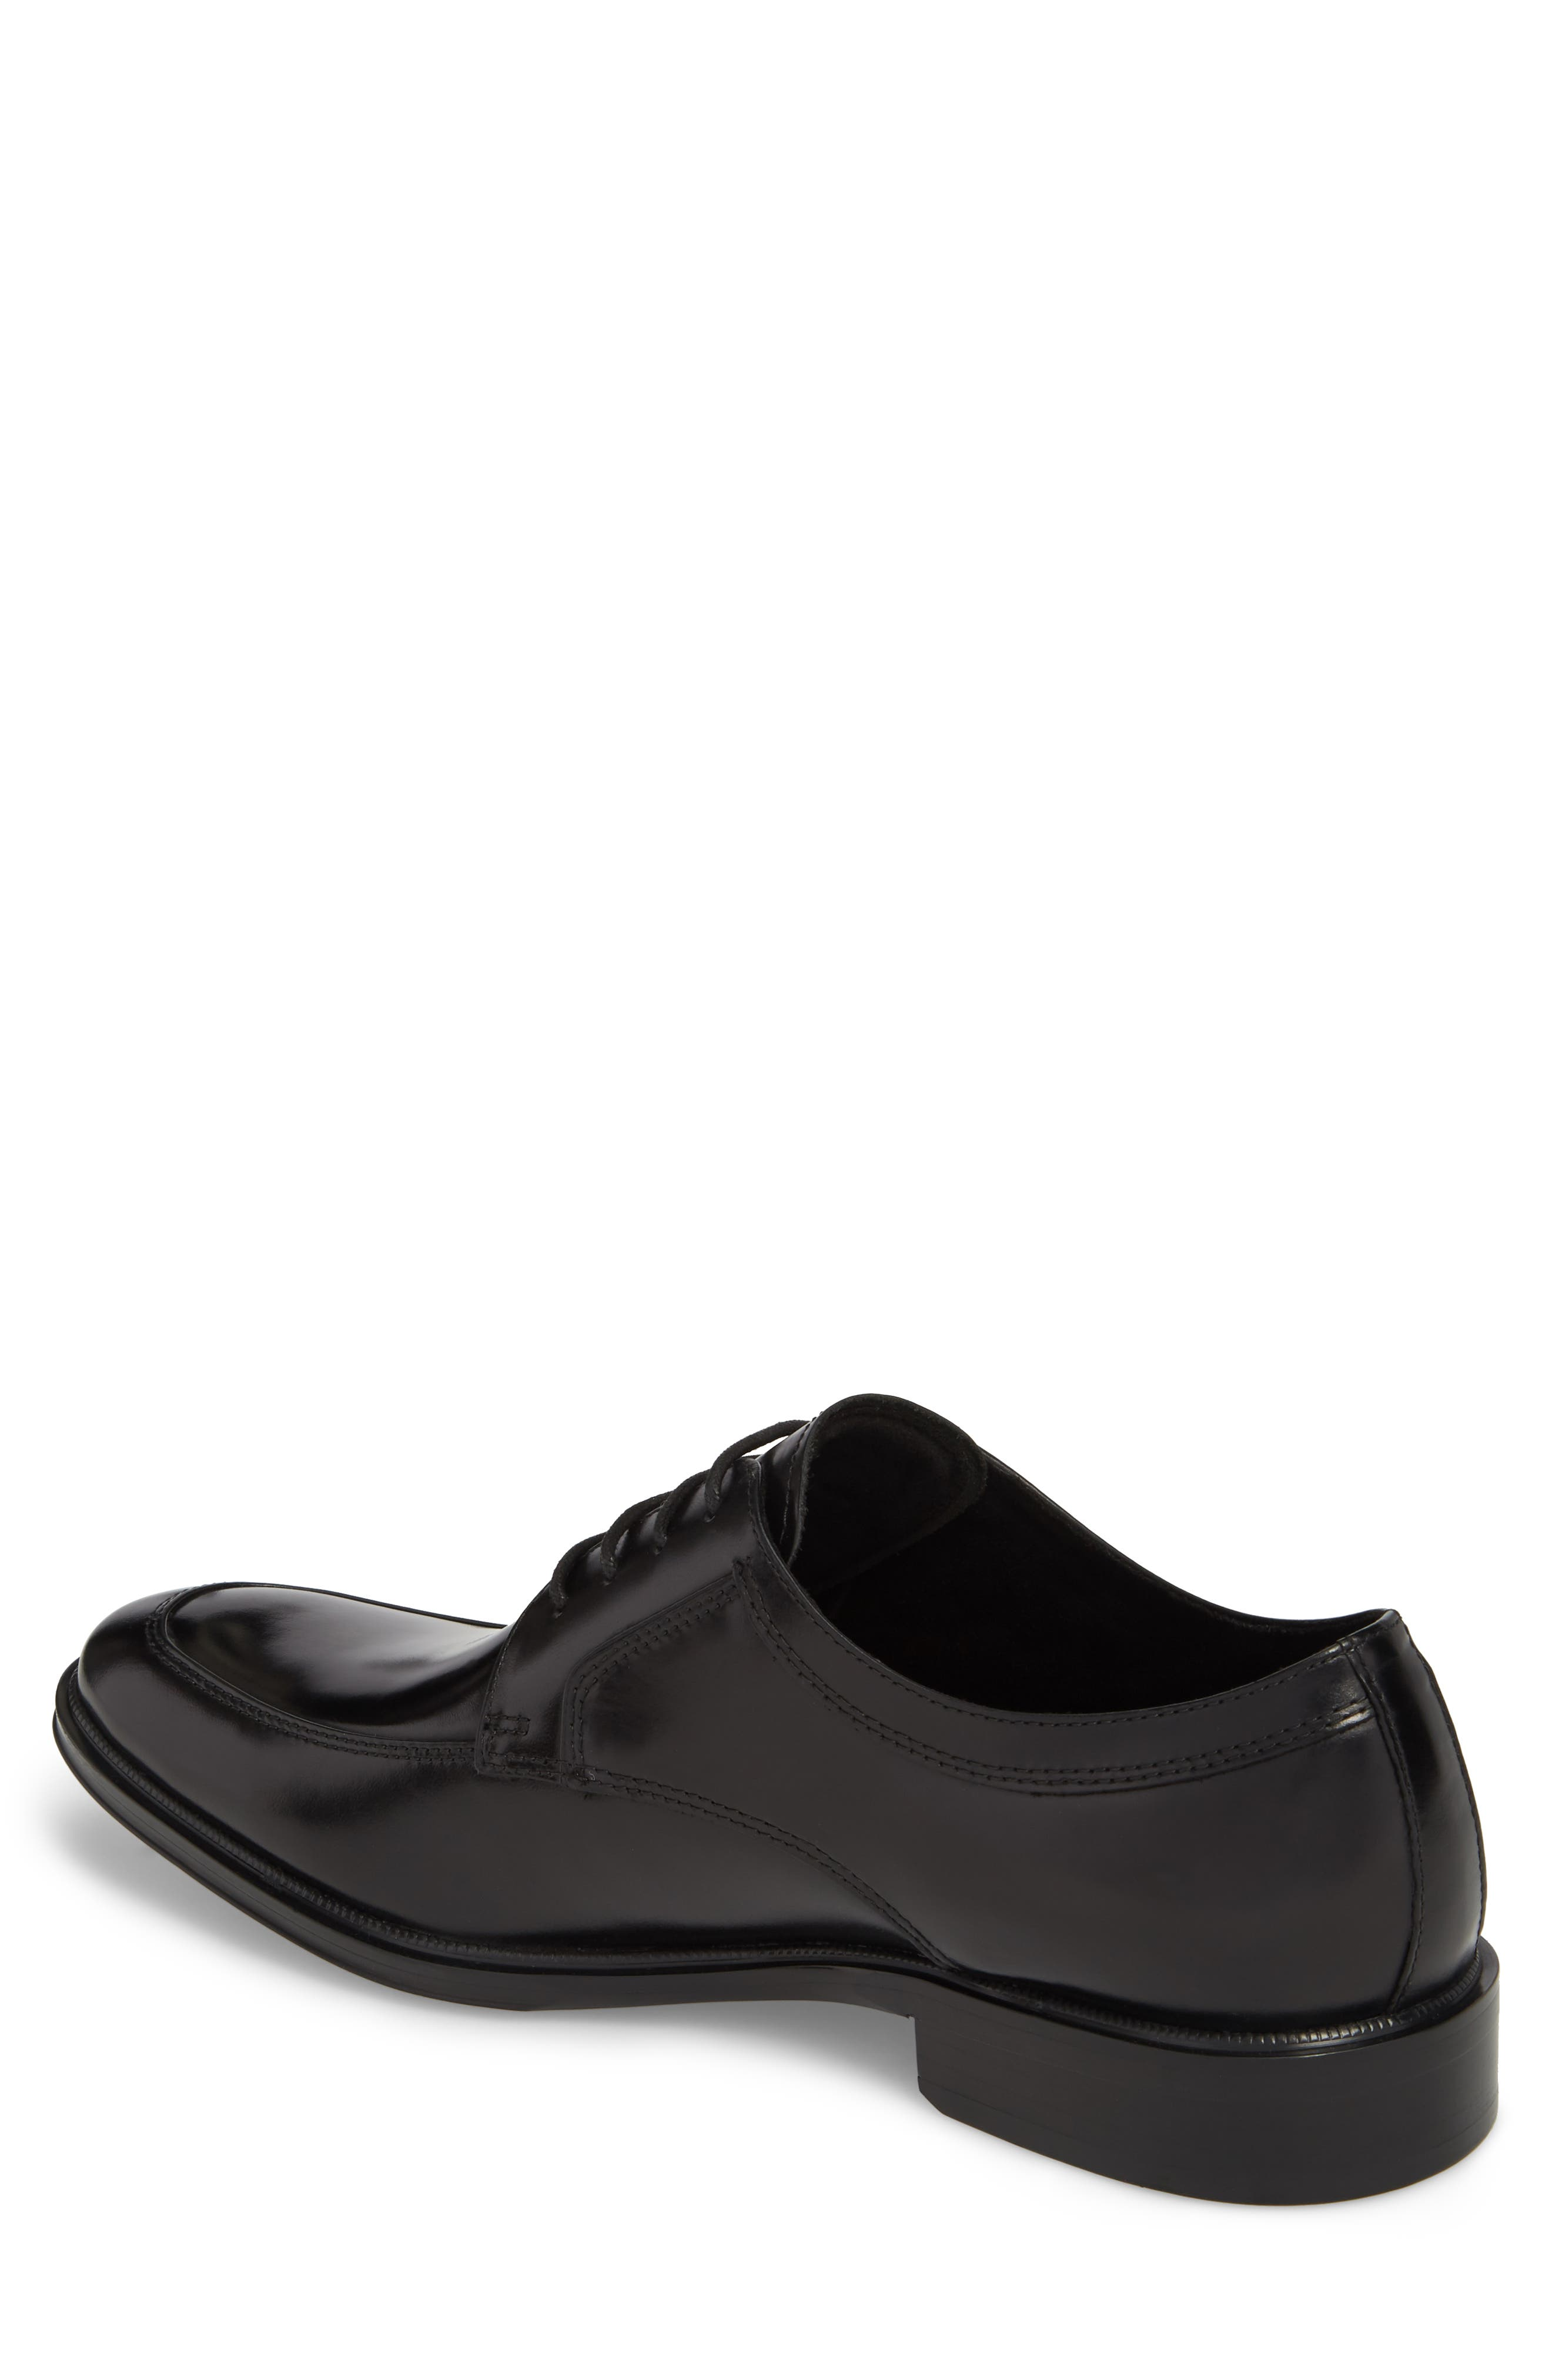 KENNETH COLE NEW YORK, Tully Apron Toe Derby, Alternate thumbnail 2, color, BLACK LEATHER